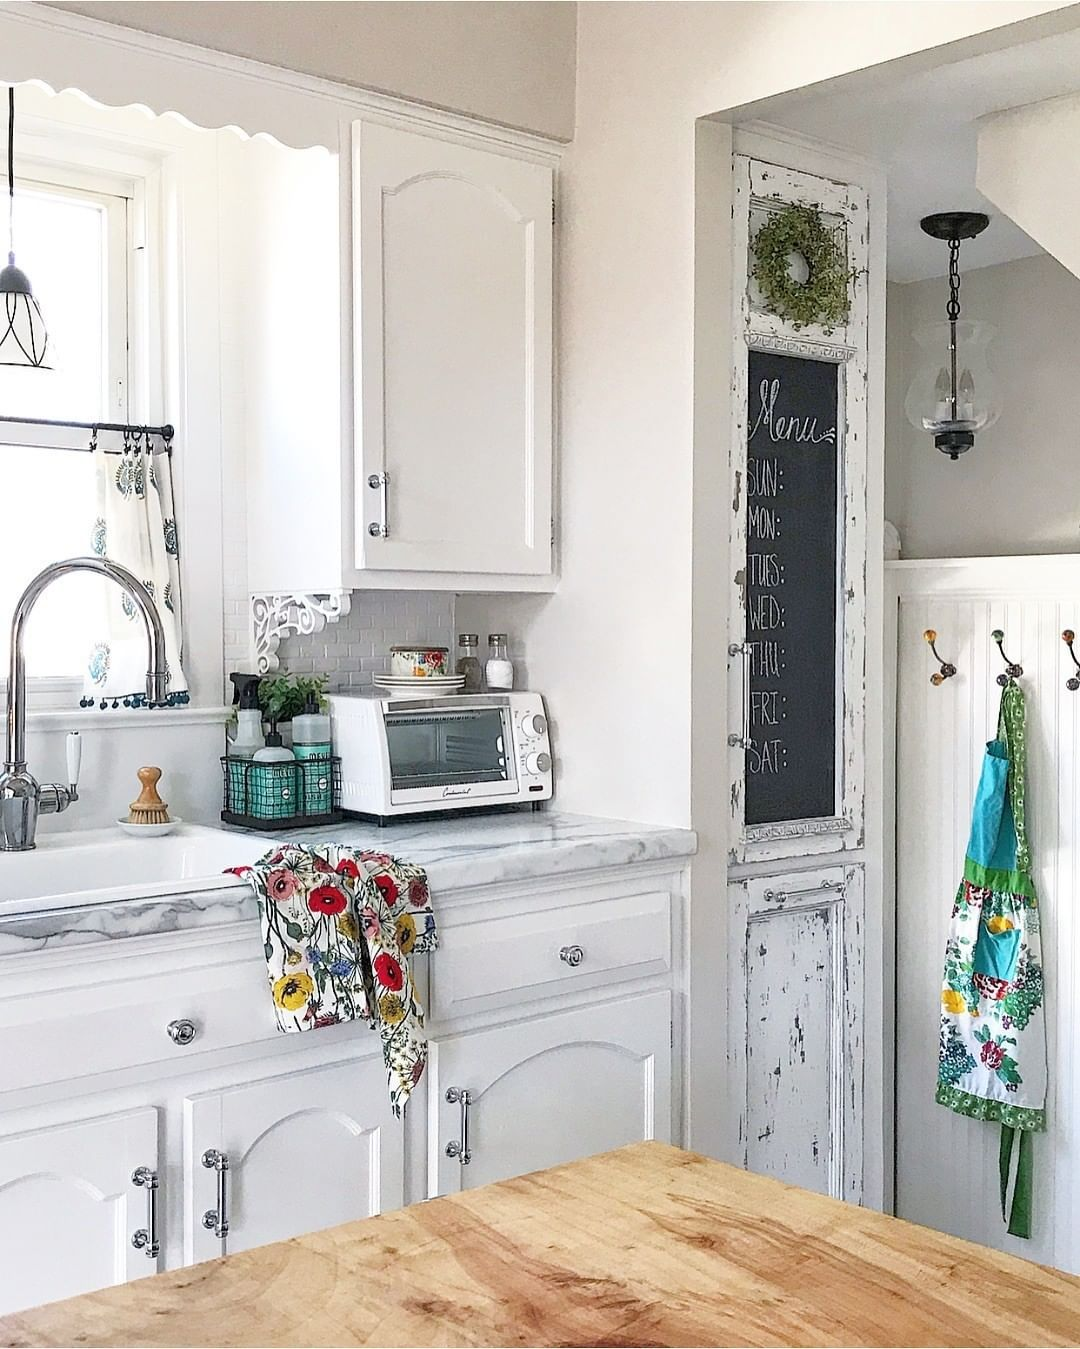 Such A Bright And Cheery Kitchen We Love How My Purposed Place Made This Kitchen Her Own Wi Kitchen Inspiration Design House Interior Cottages And Bungalows